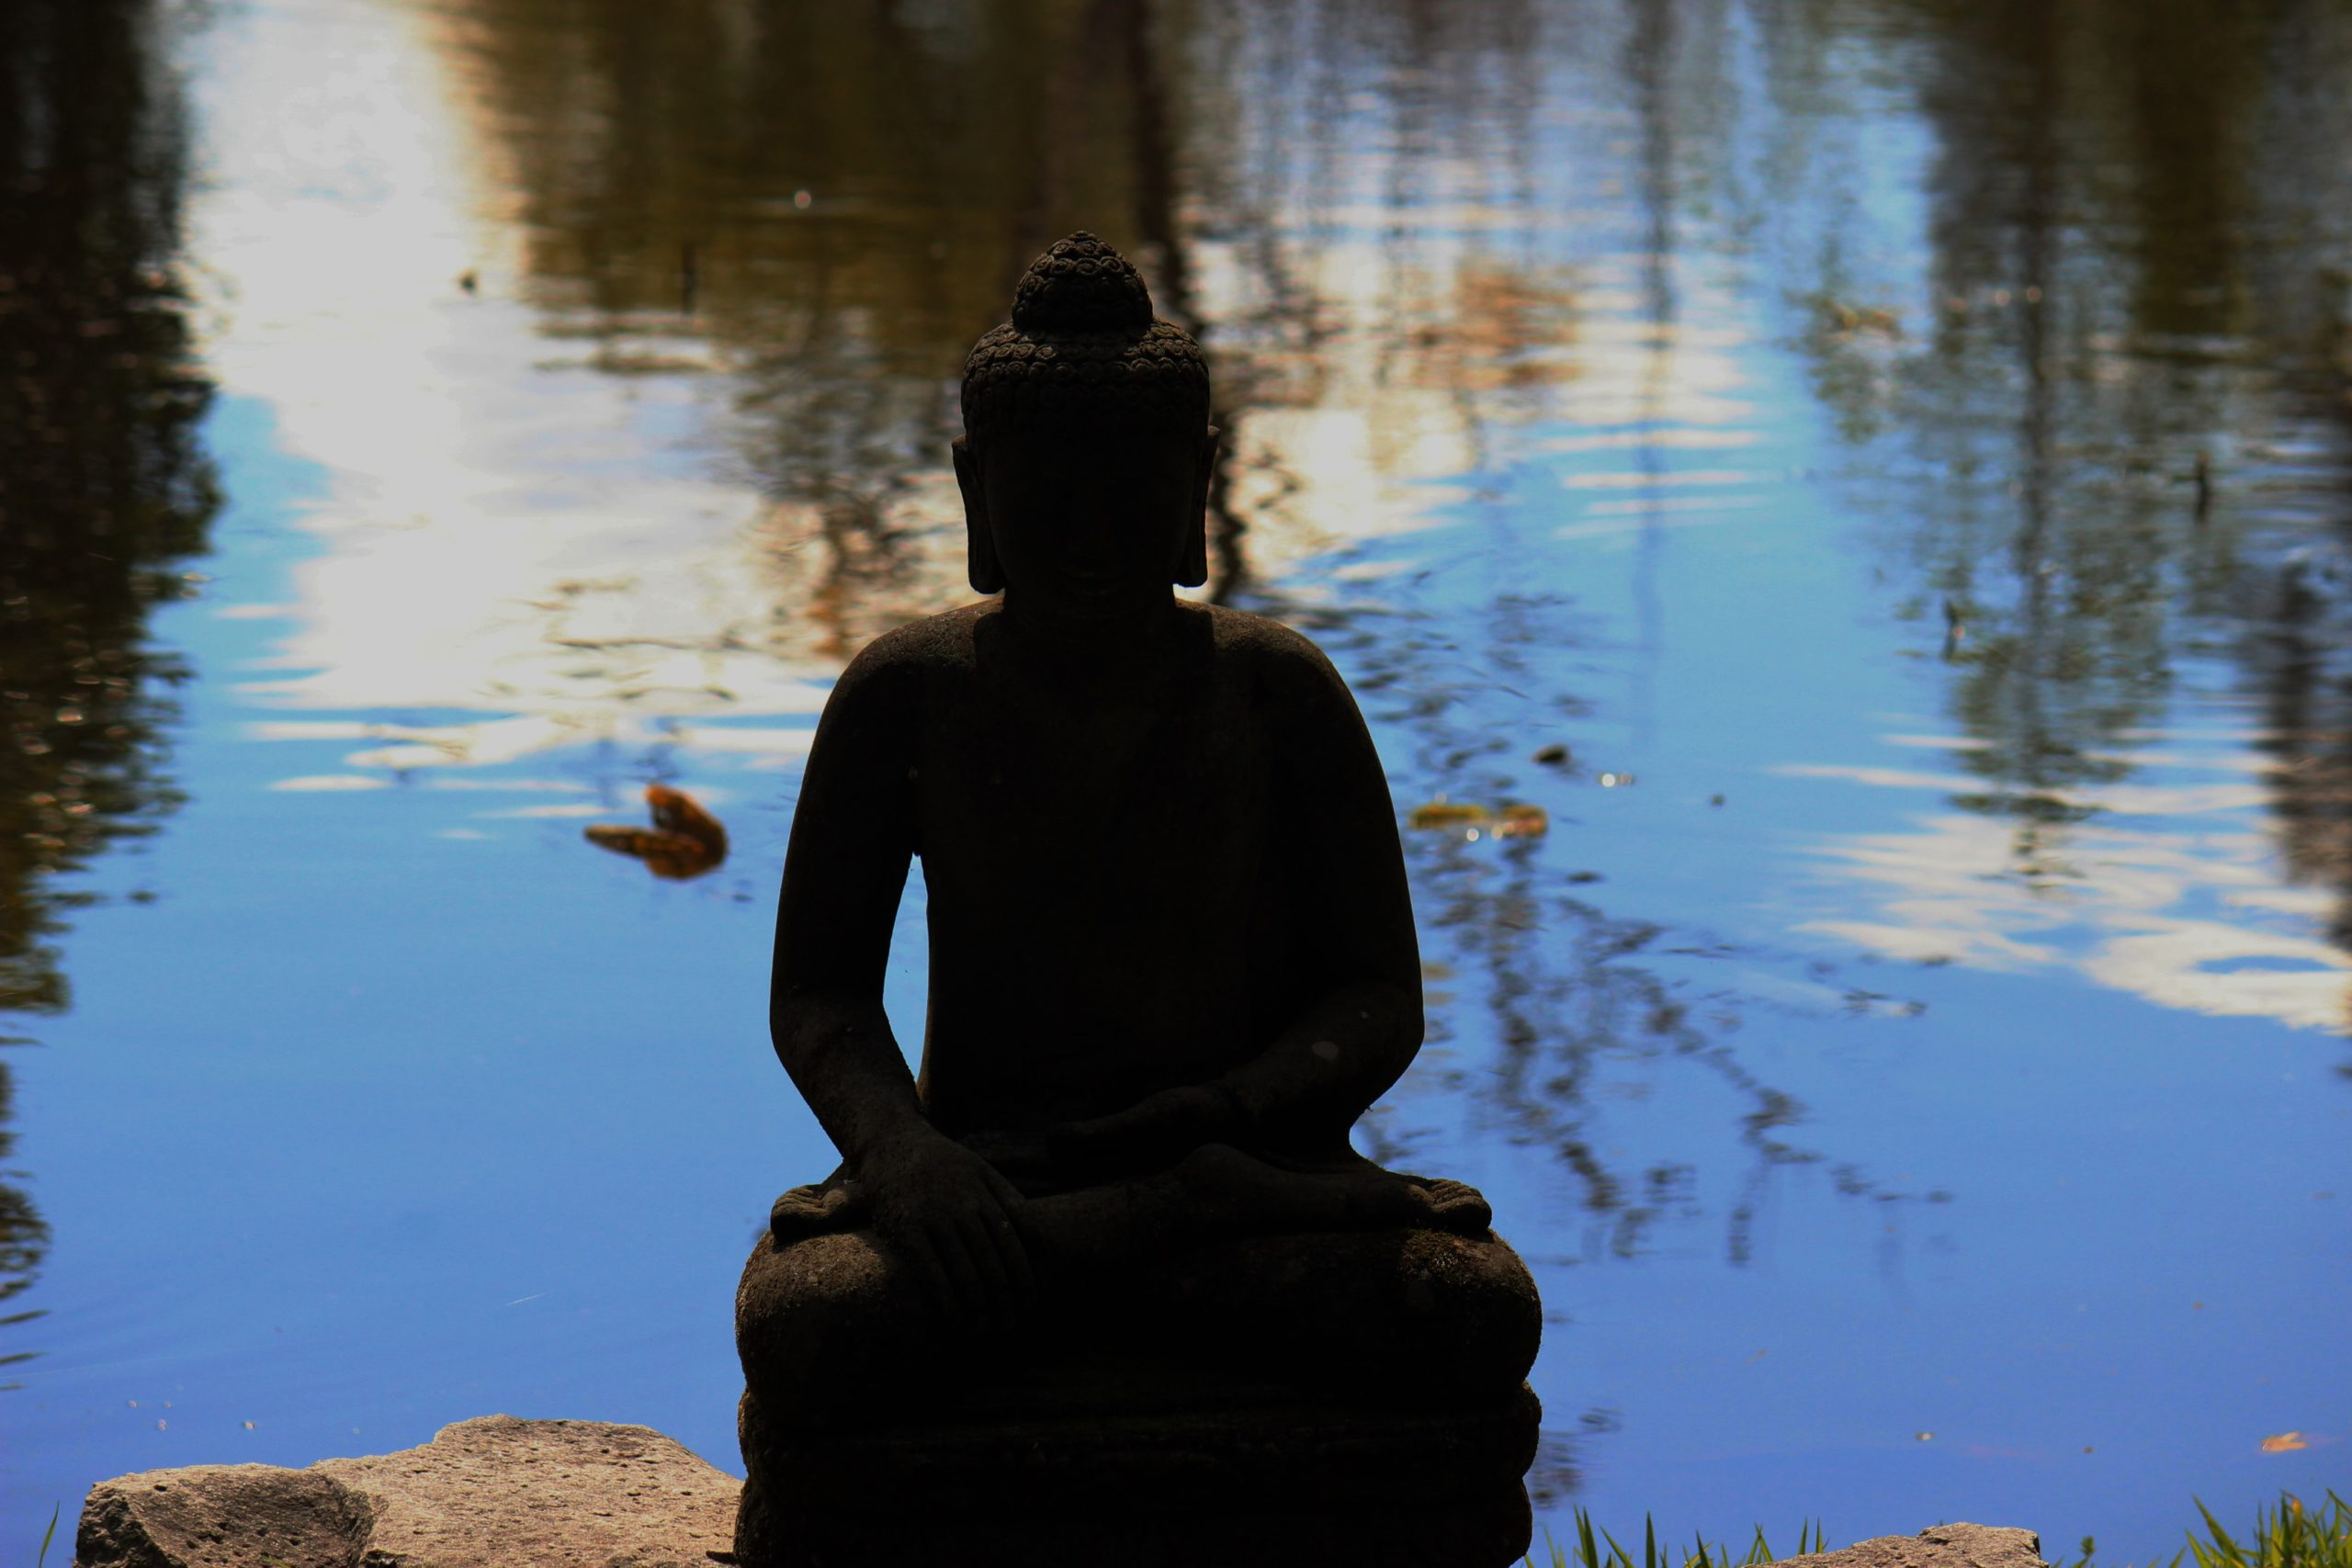 Inspired by Buddhism at the Nan Tien Temple